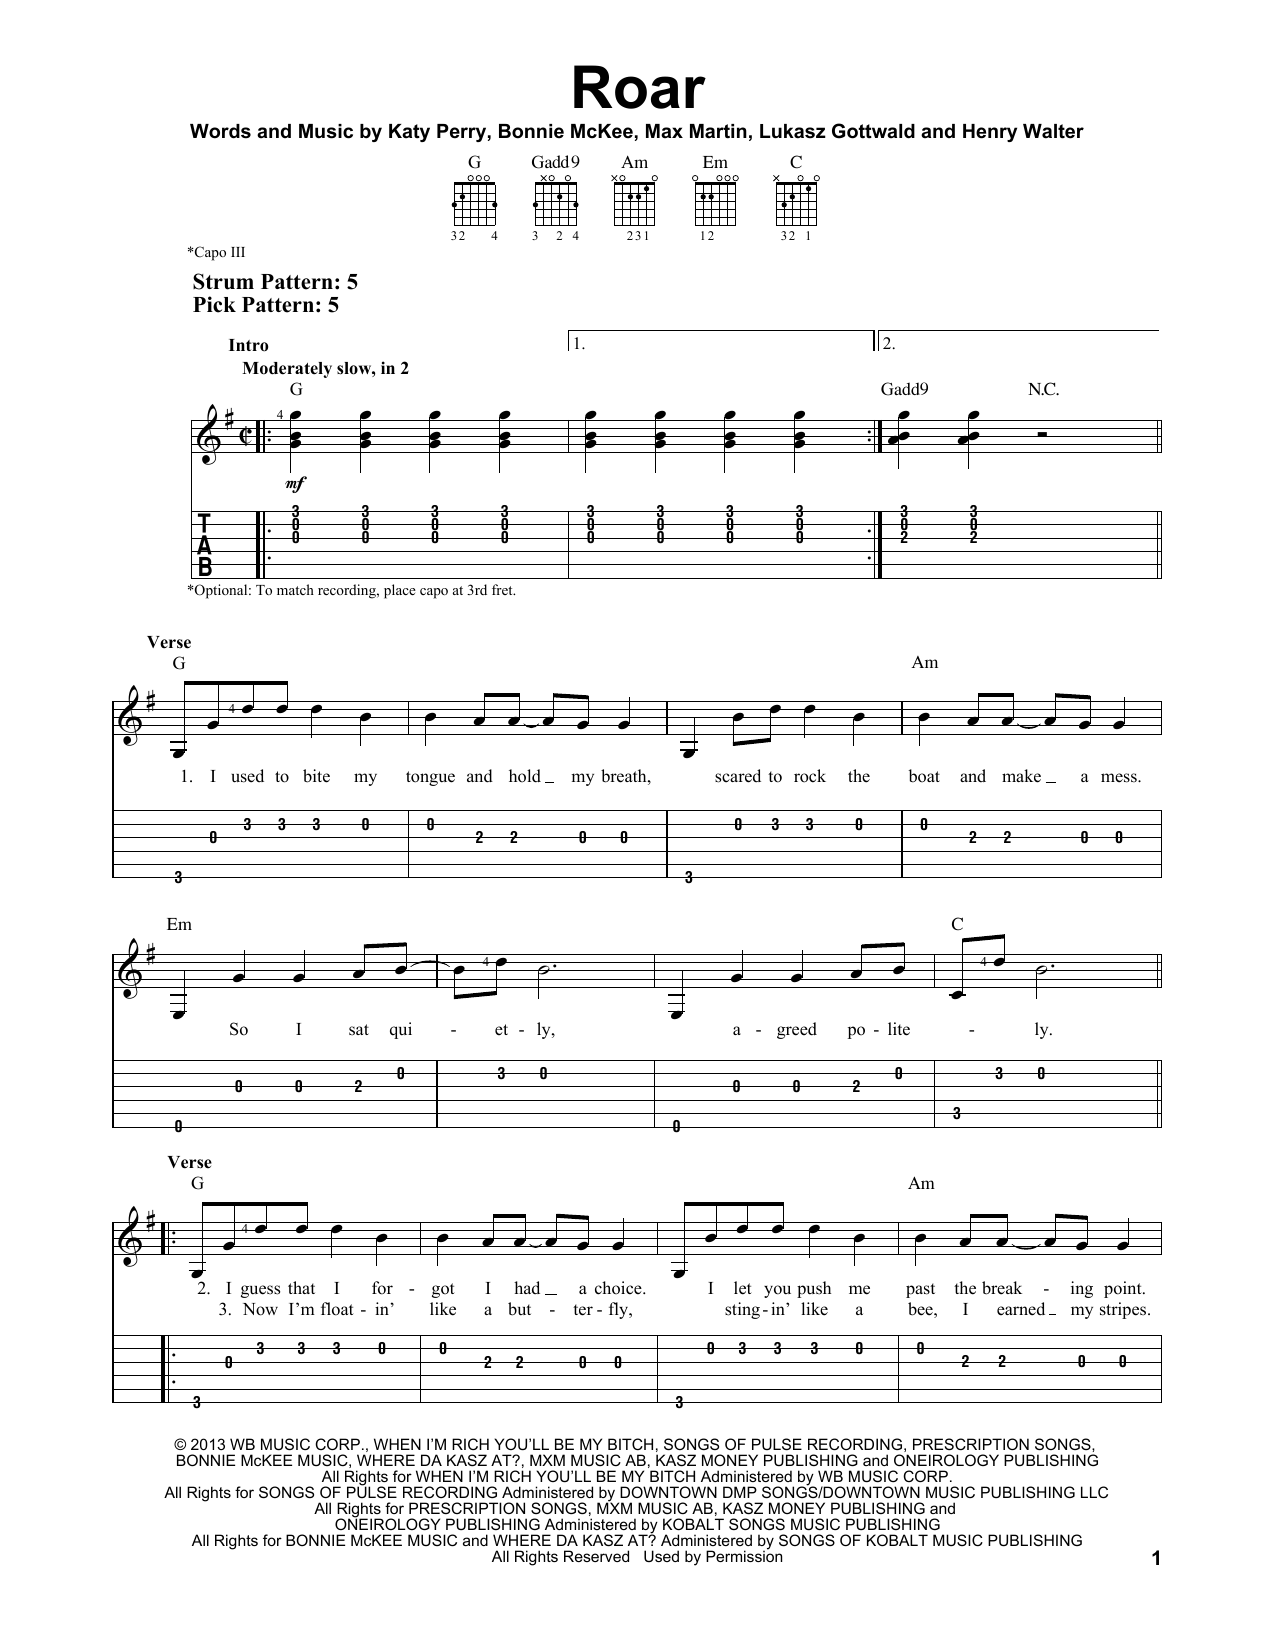 Roar : Sheet Music Direct